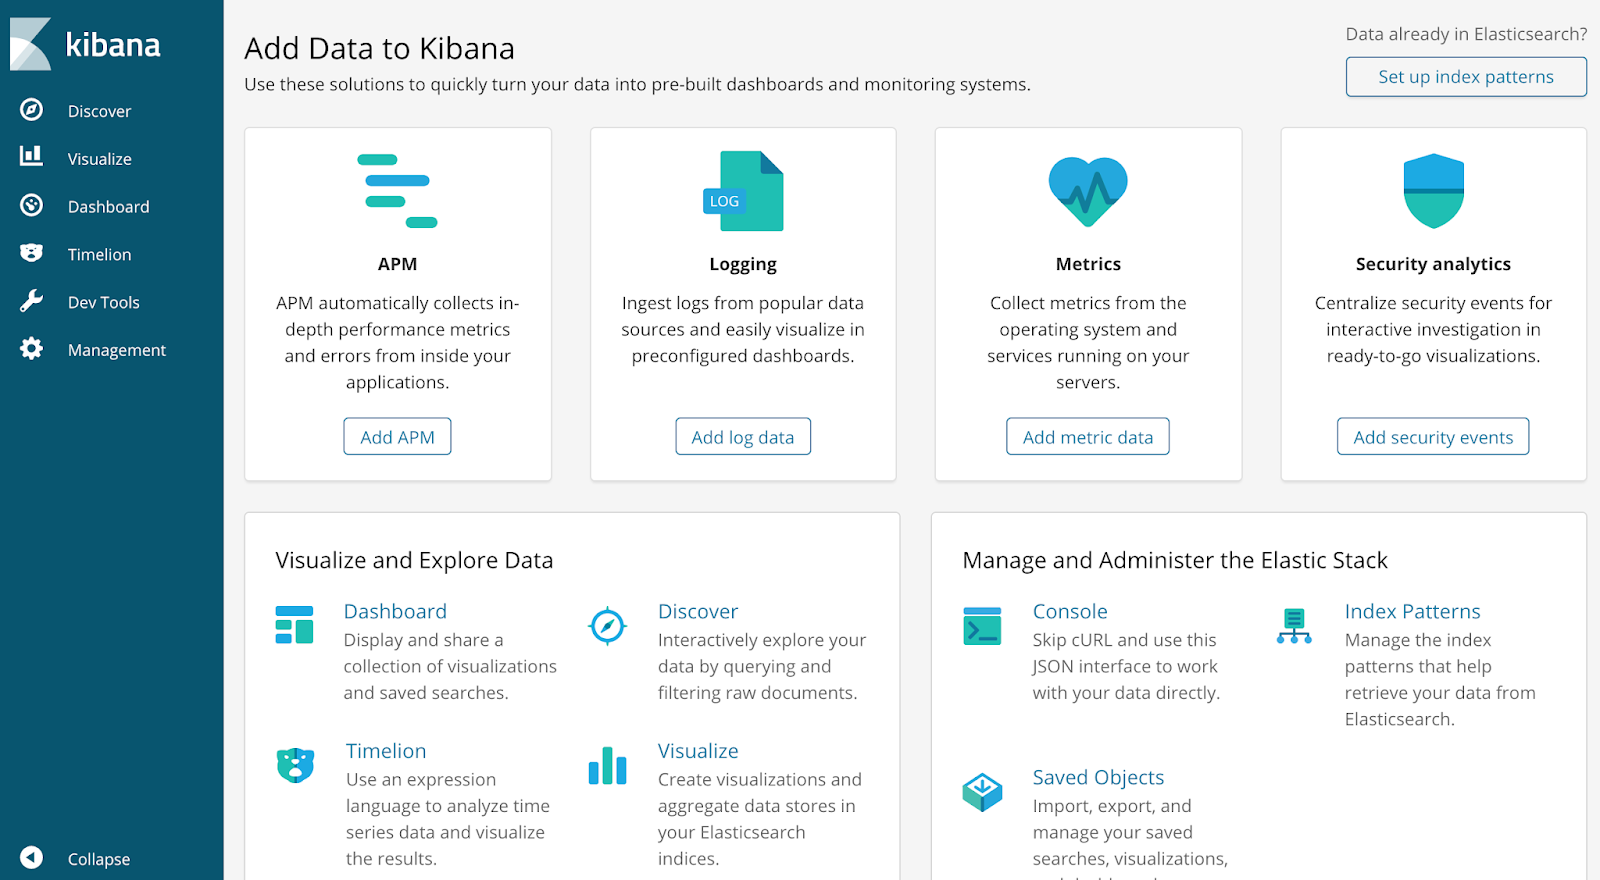 How To Setup Kibana-6 With Elasticsearch-6 On Ubuntu 16 04 ~ Appychip